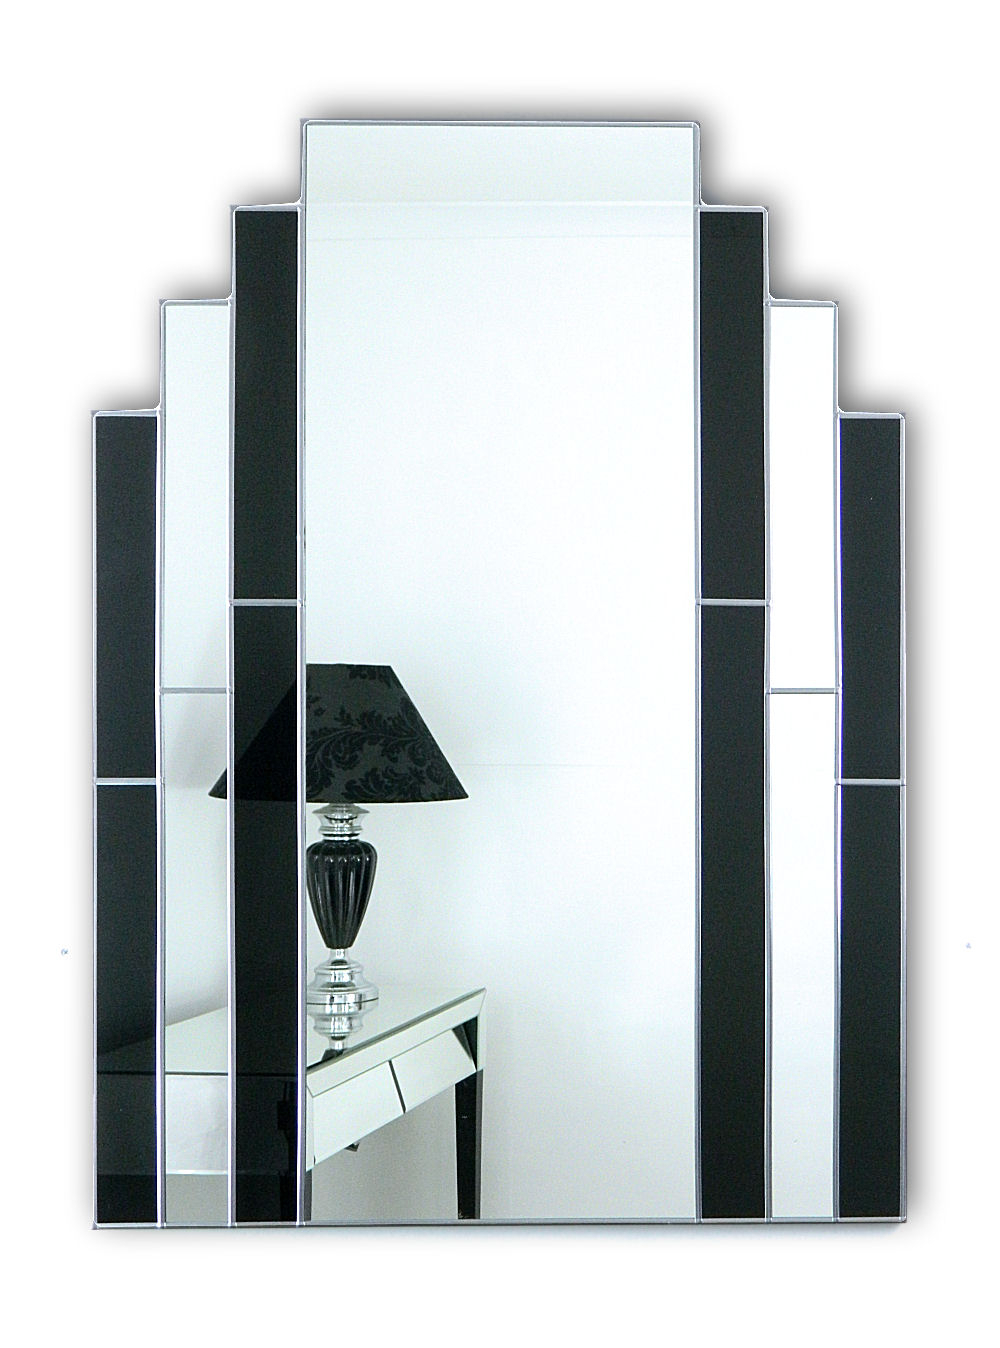 Art Deco Wall Mirrors With Favorite Classic Black Original Handcrafted Art Deco Wall Mirror With Silver Trim (View 17 of 20)